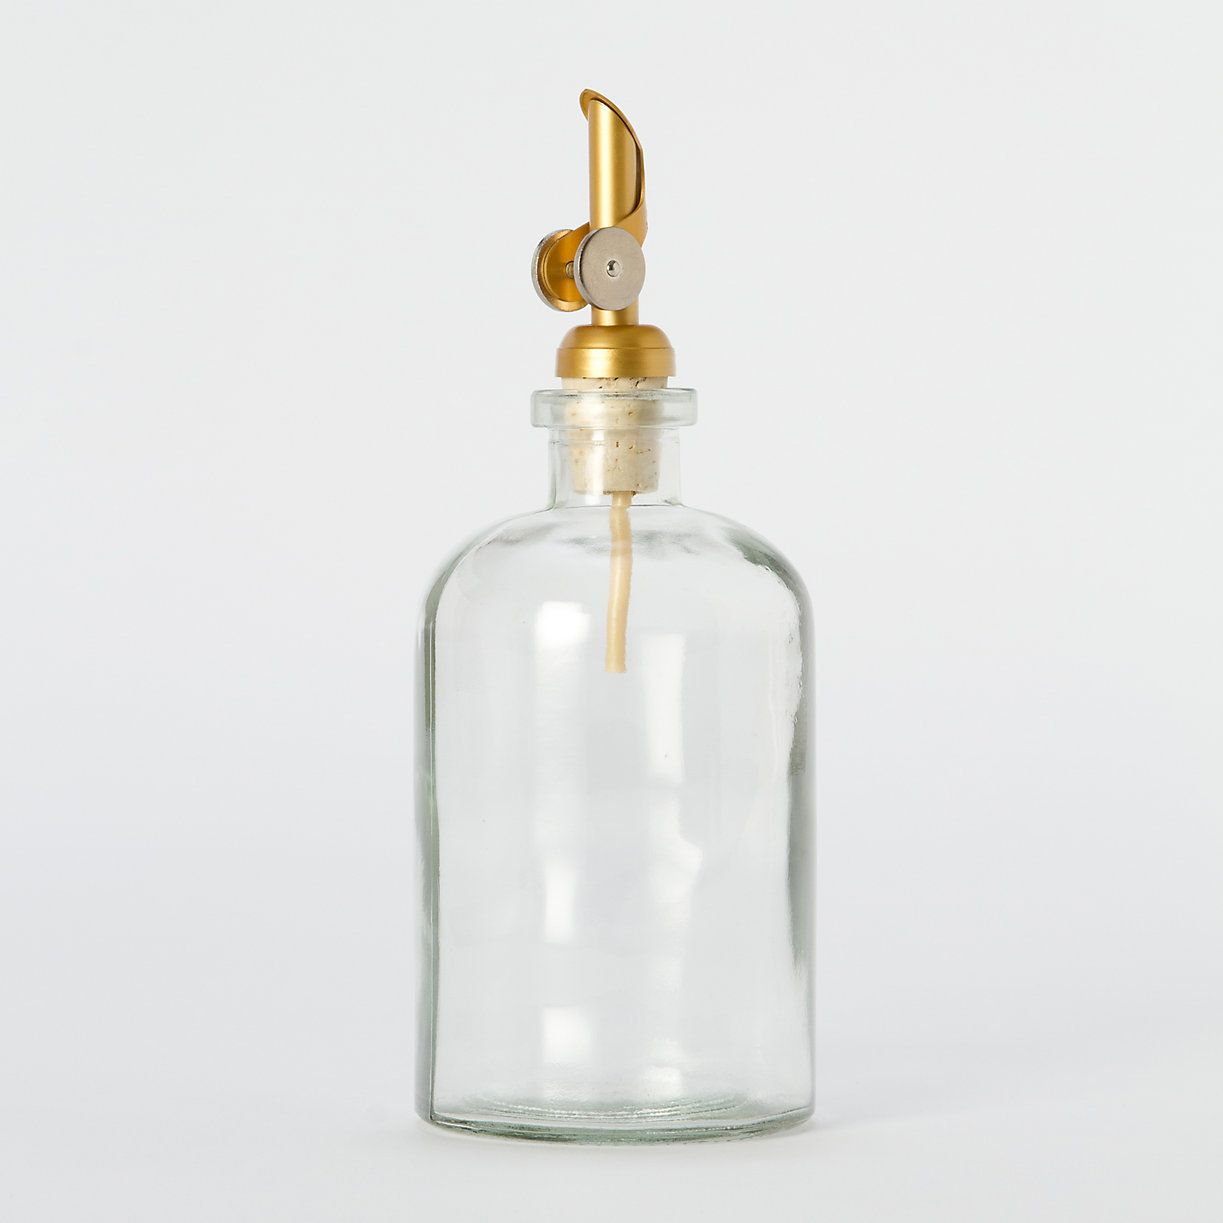 af1dfac9140c Once you drizzle oil from this recycled glass jar with a brushed ...